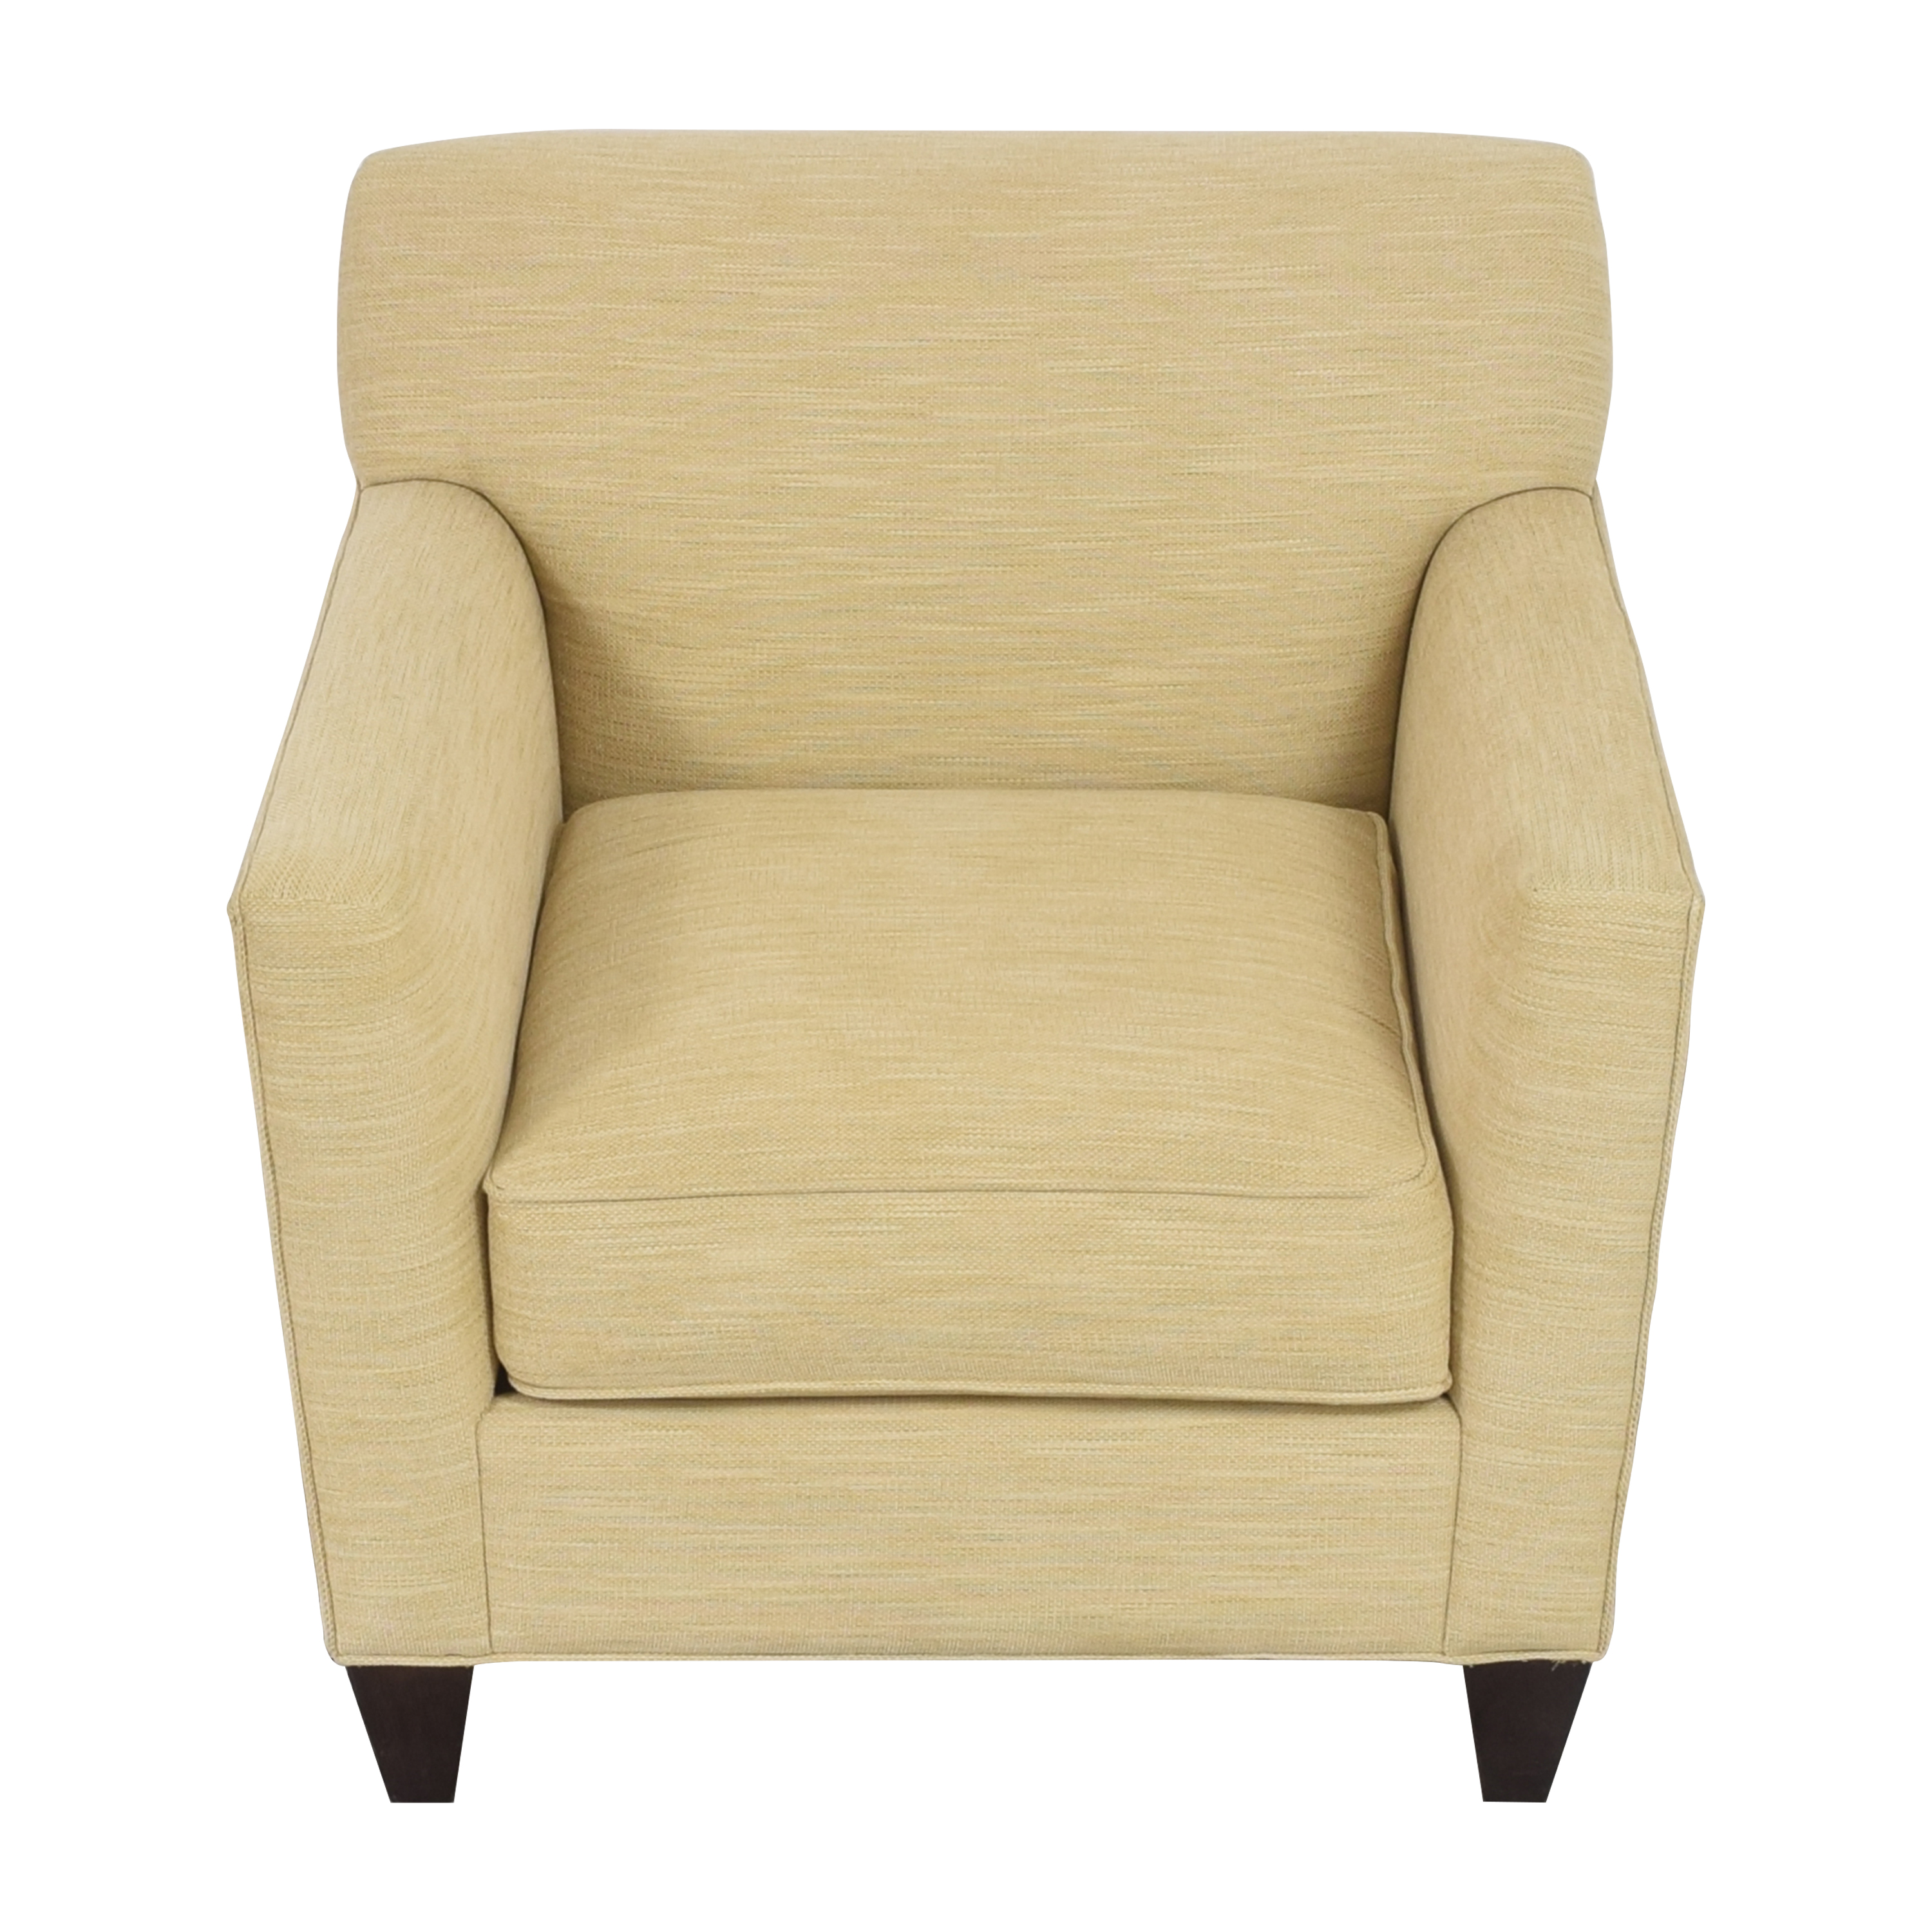 Crate & Barrel Hennessy Chair / Chairs